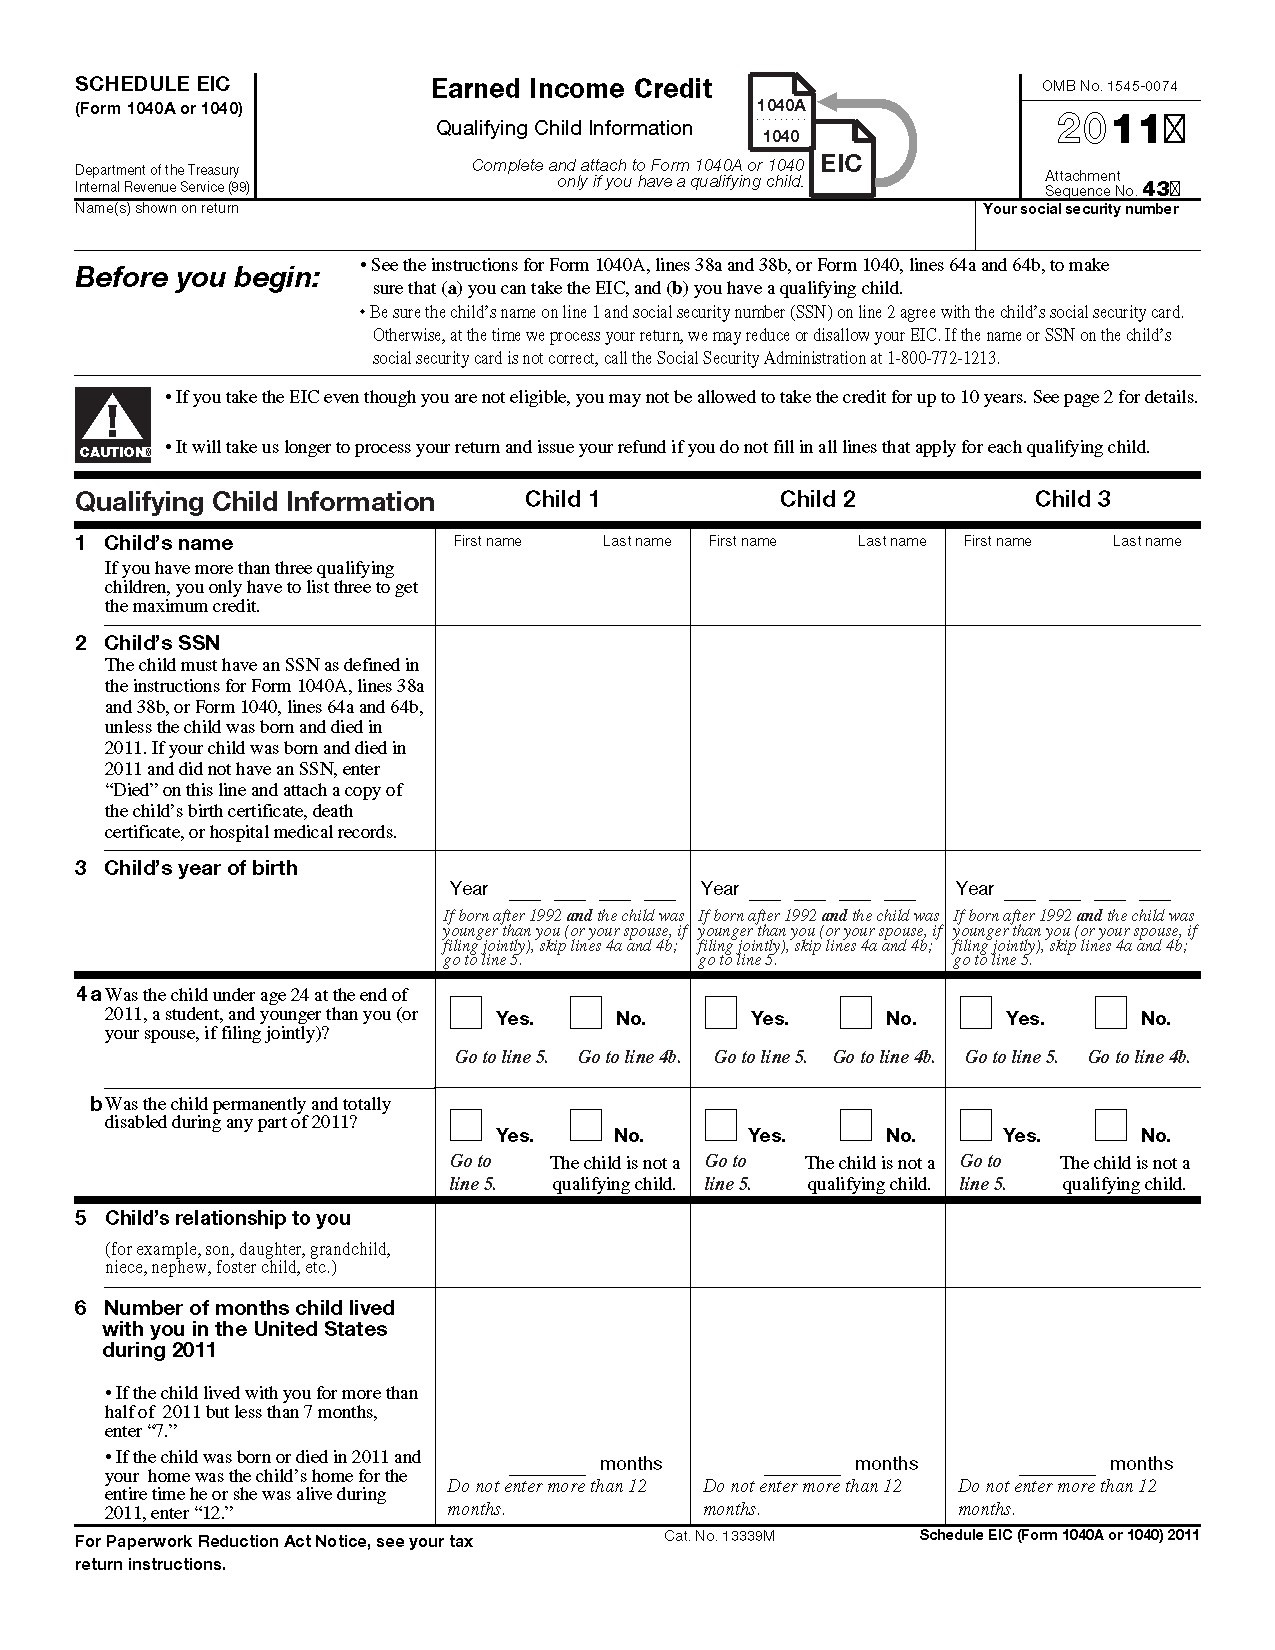 Earned Income Credit Worksheet Multiplication